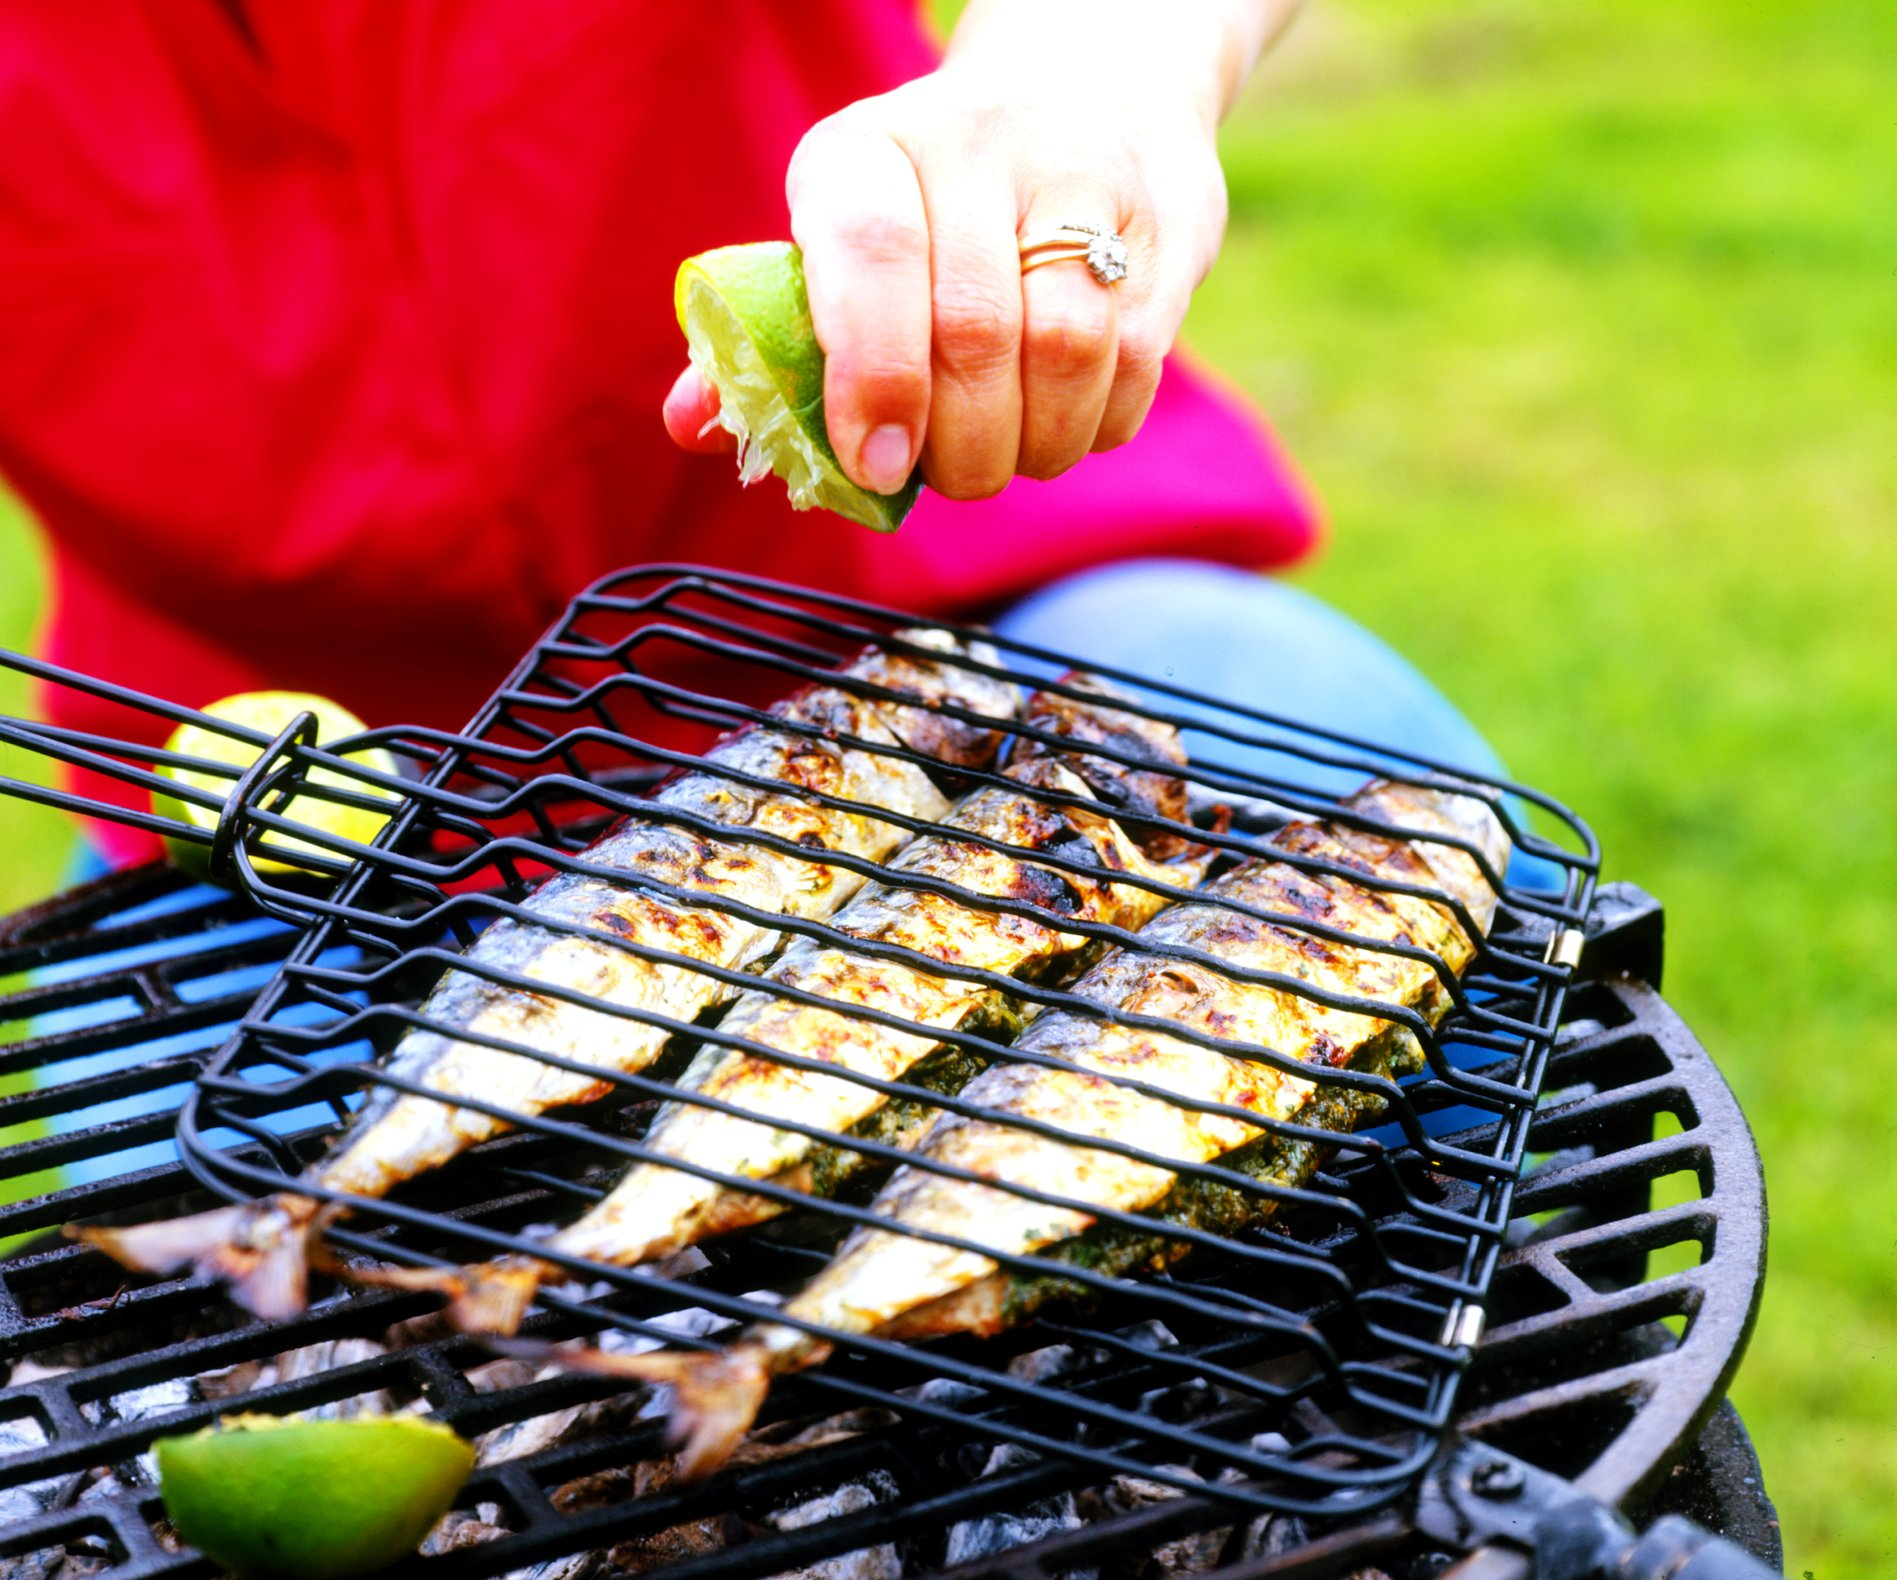 Lime being squeezed over mackerel on barbecue